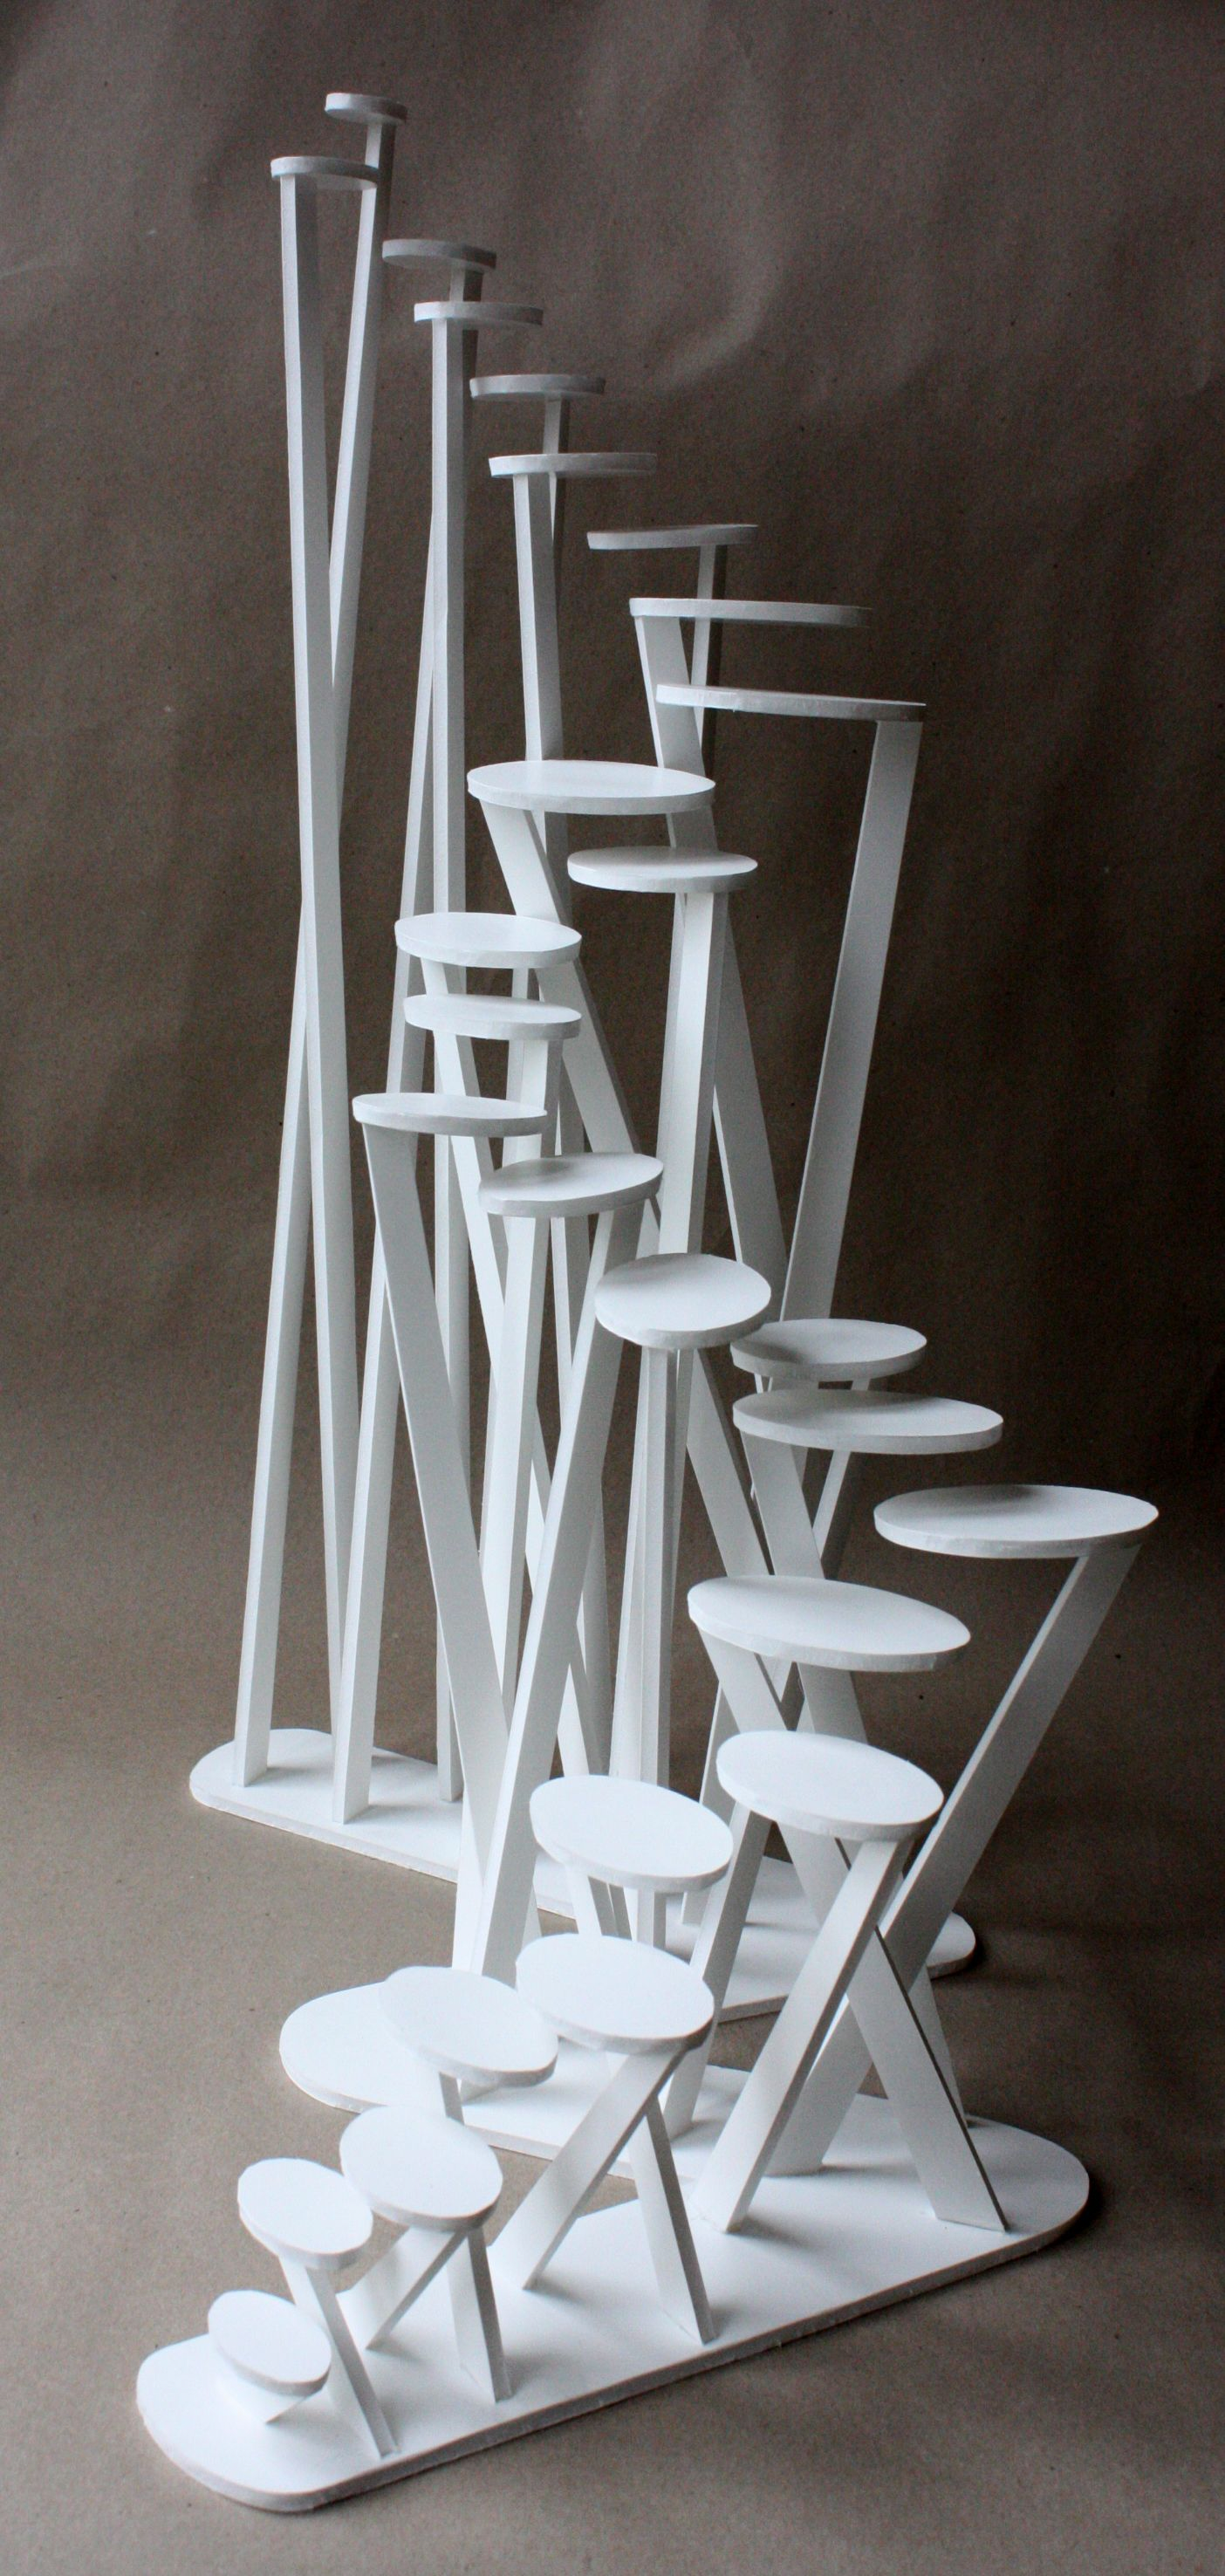 Clara Lieu, Wellesley College Art Department, Staircase Sculpture  Assignment, Foam Board U0026 Hot